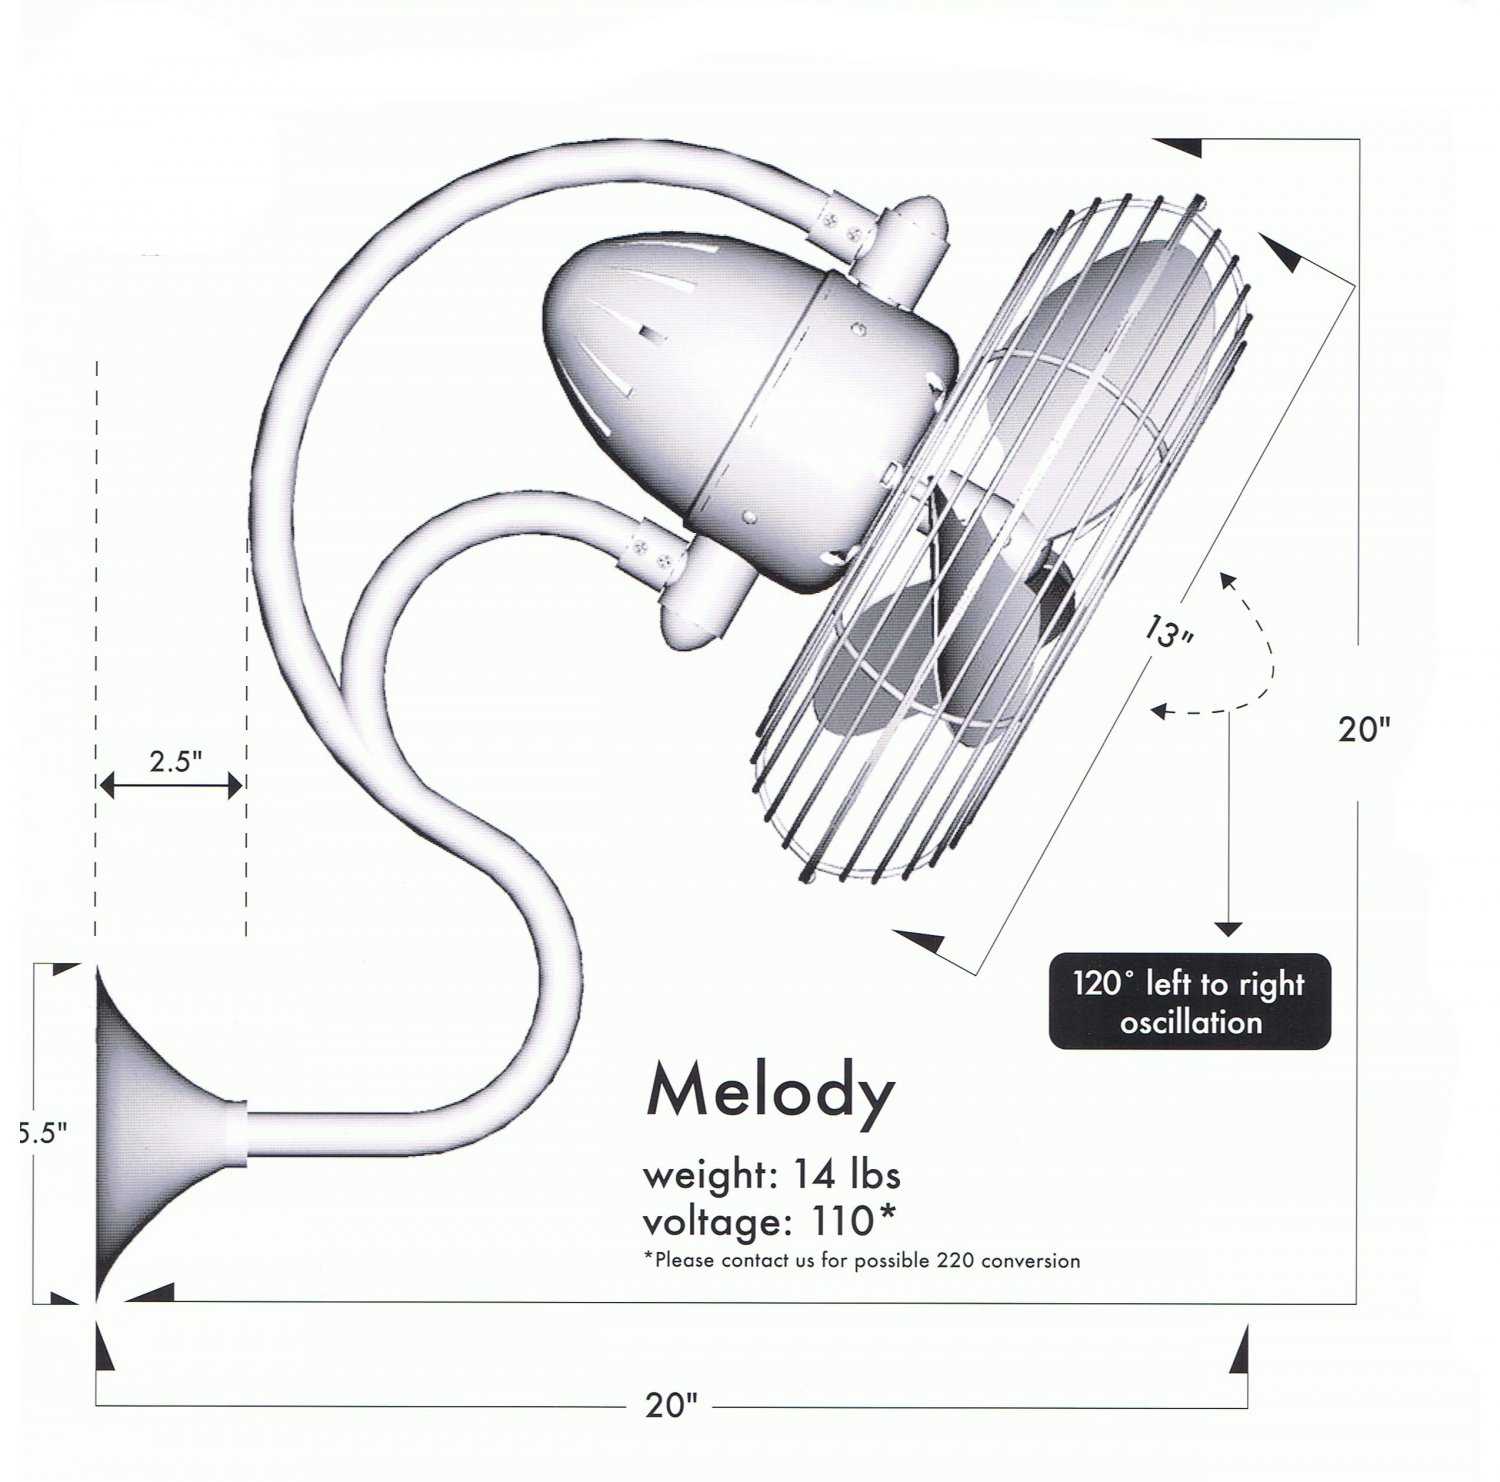 Melody Oscillating Wall Mount Fan Brushed Nickel 389 25